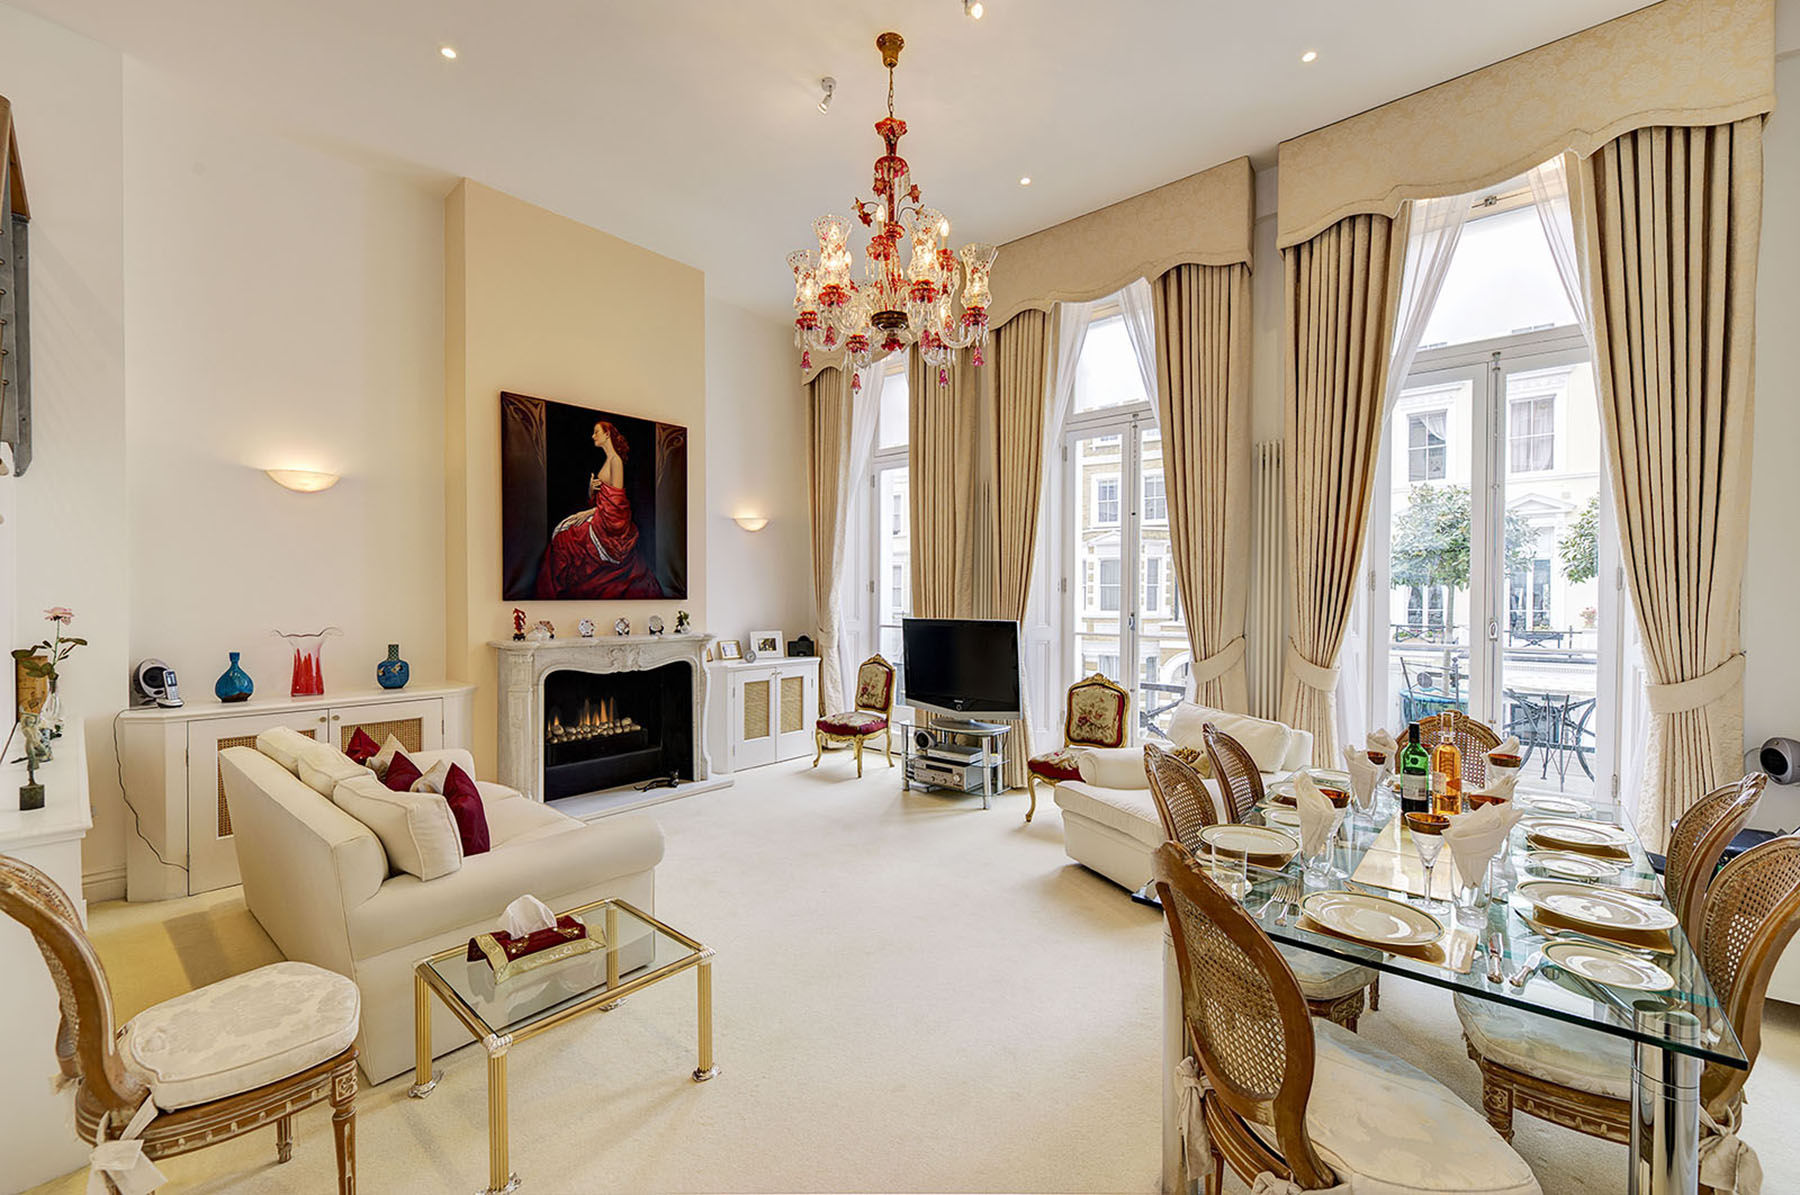 Apartment for Sale at Lexham Gardens London, England, United Kingdom